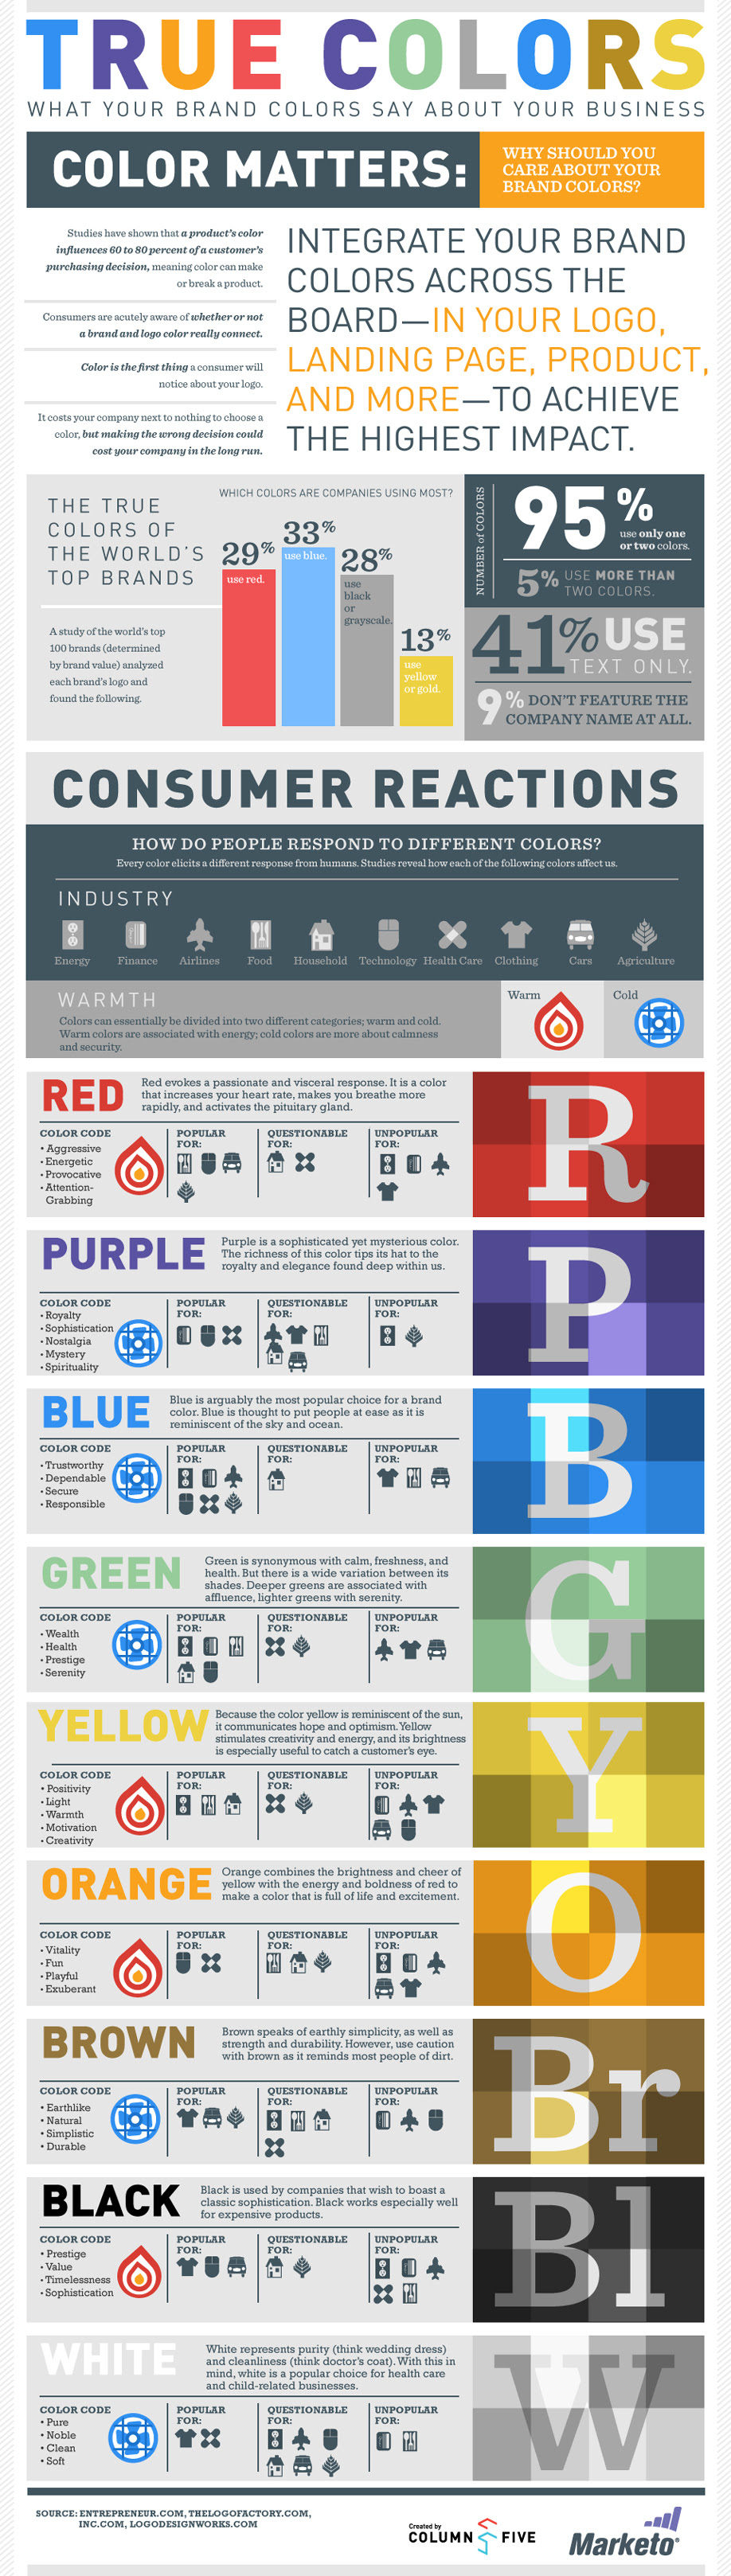 True Colors: What Your Brand Colors Say About Your Business #Infographic #GraphicDesign